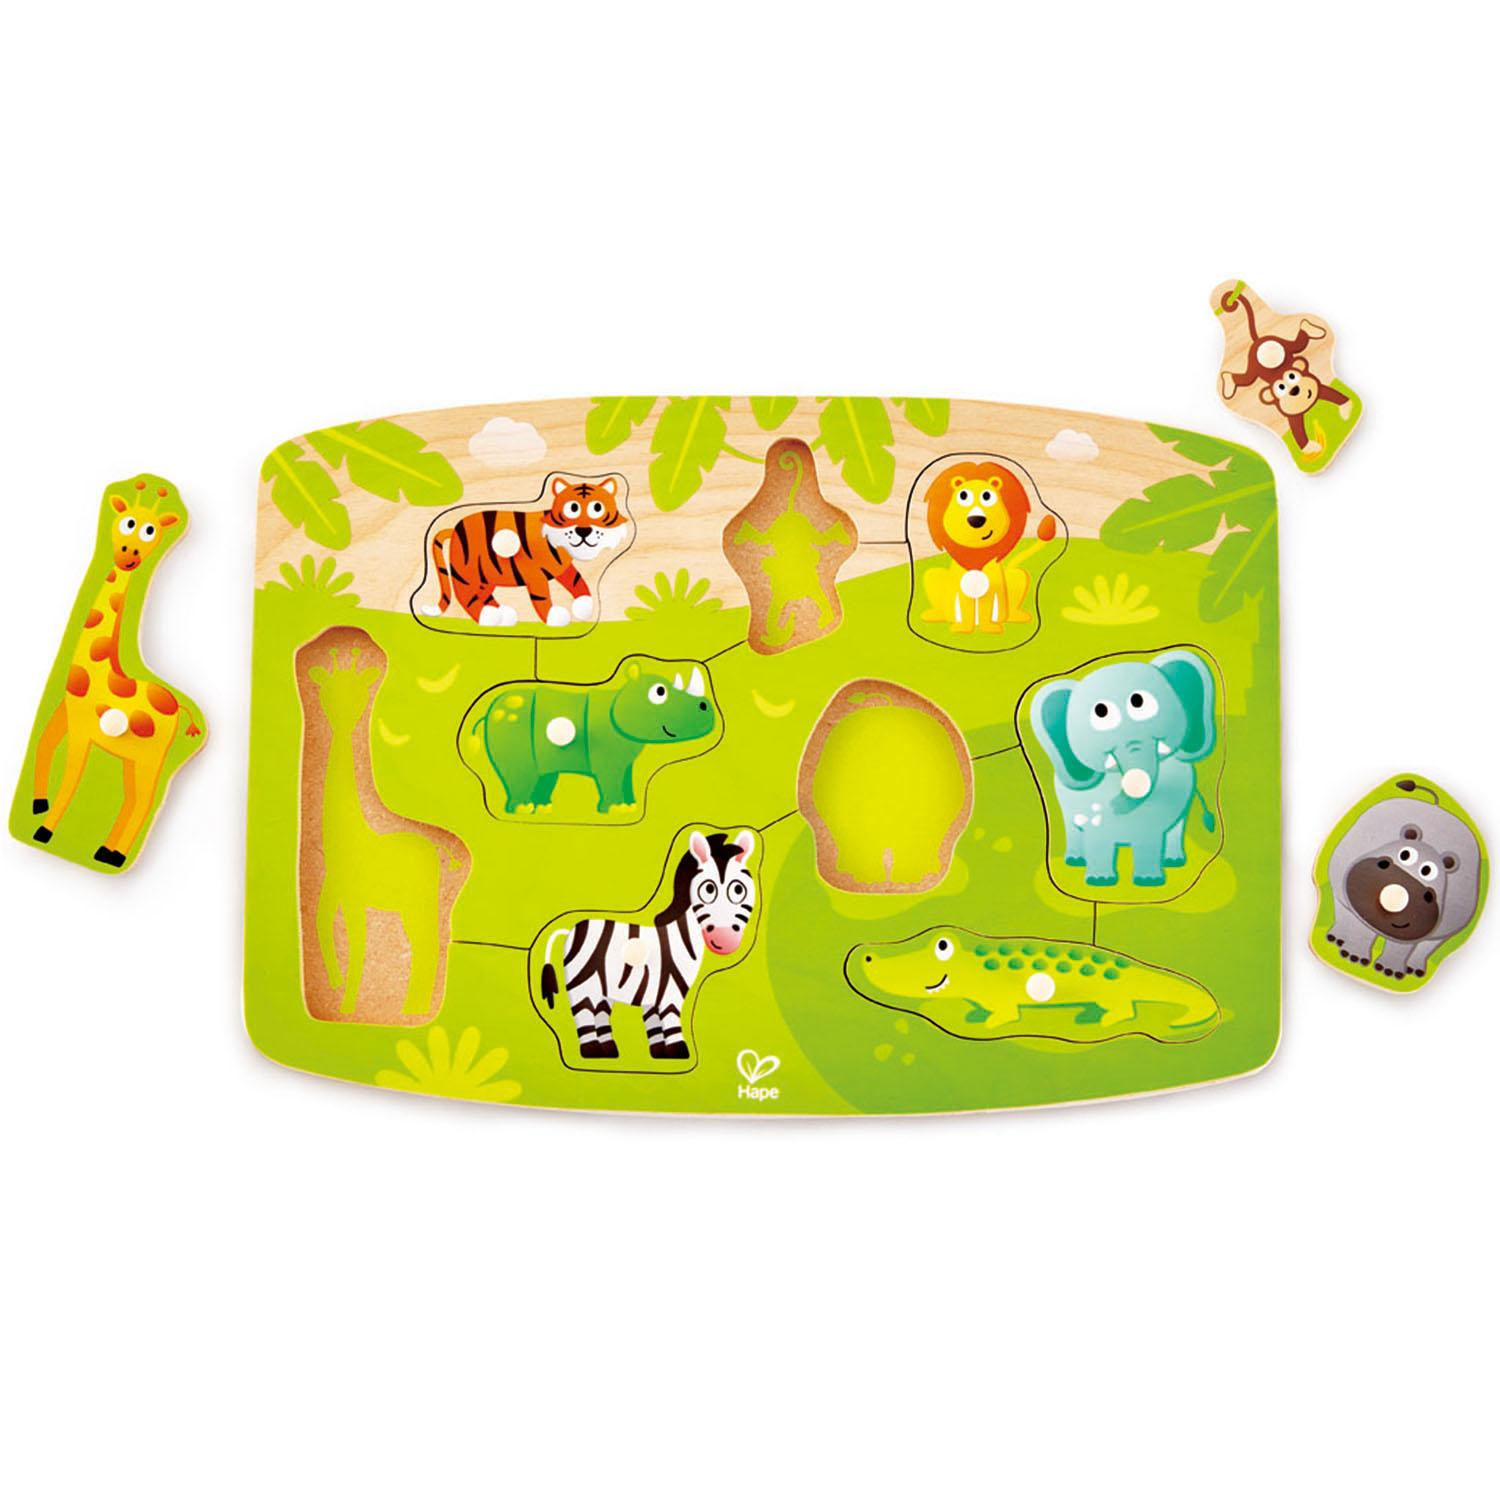 Green, jungle-themed puzzle with different animal pieces that have been lifted out.